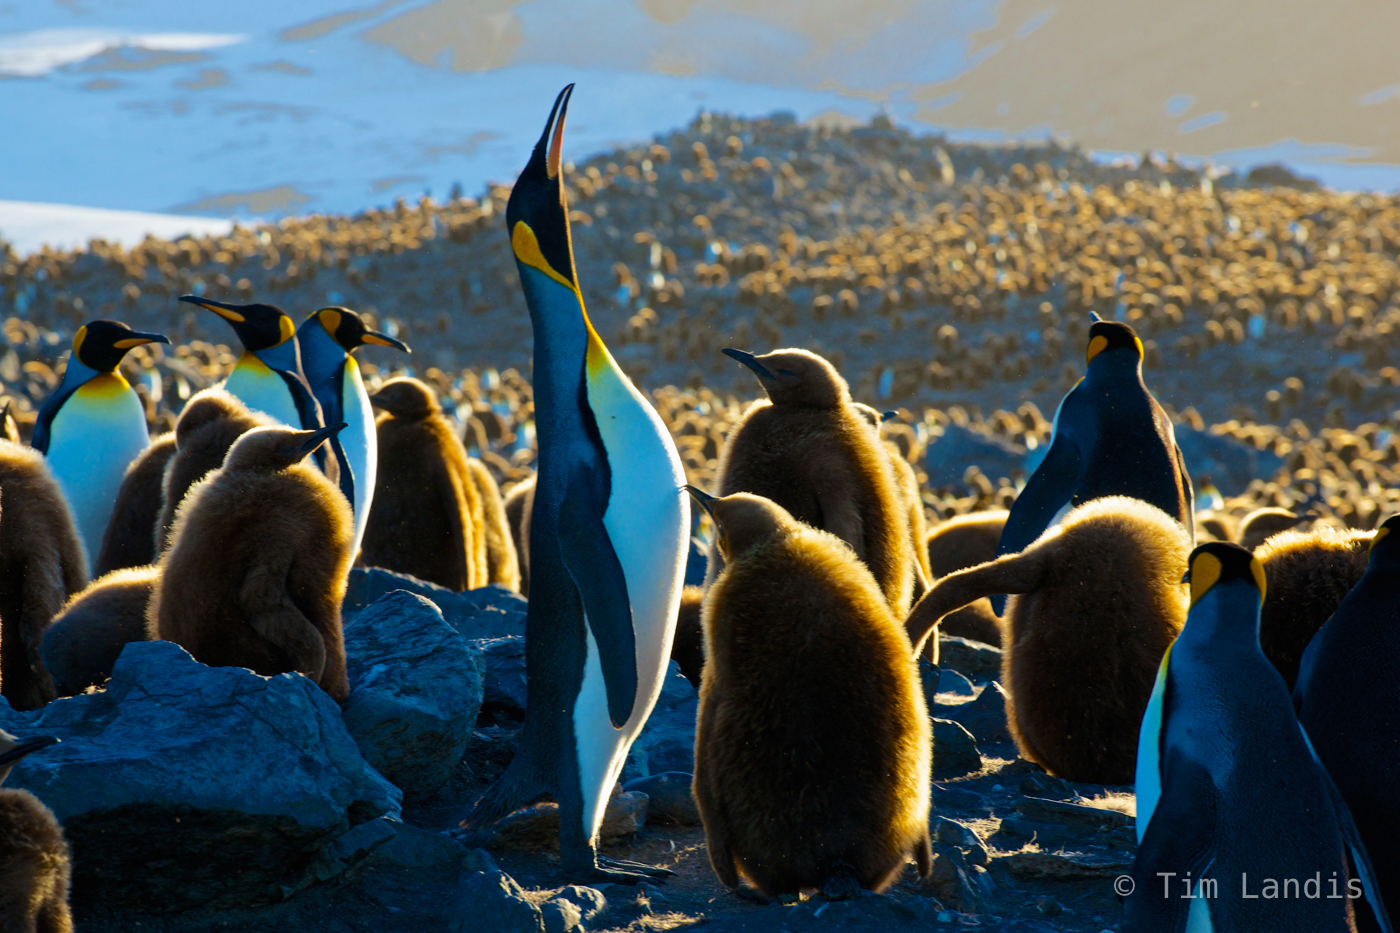 Mother feeding baby, Southern Georgia Islands, king penguin colony, little brownies, photo